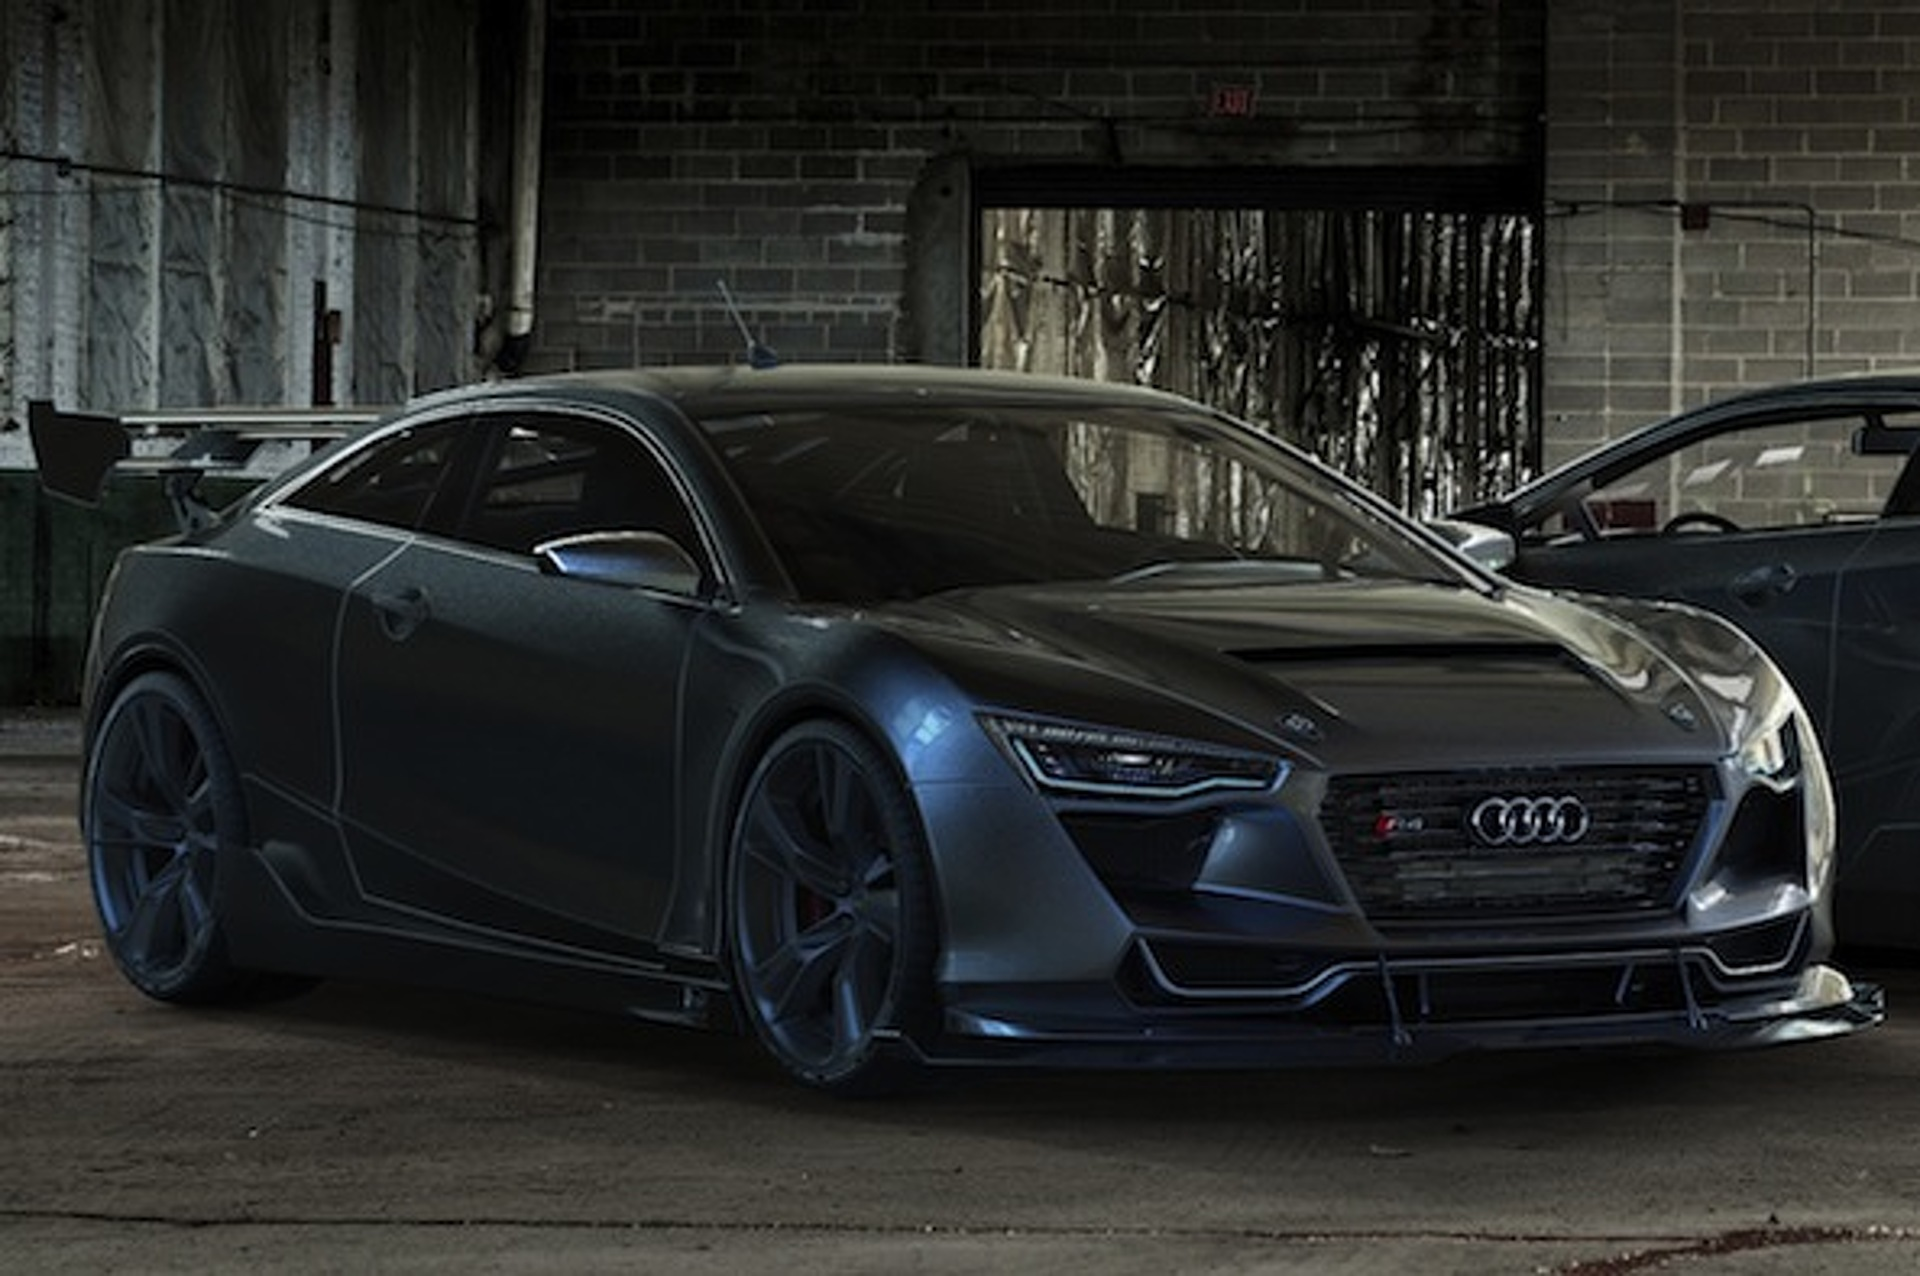 Audi R Concept Coupe Is So Pretty It Hurts - Audi r4